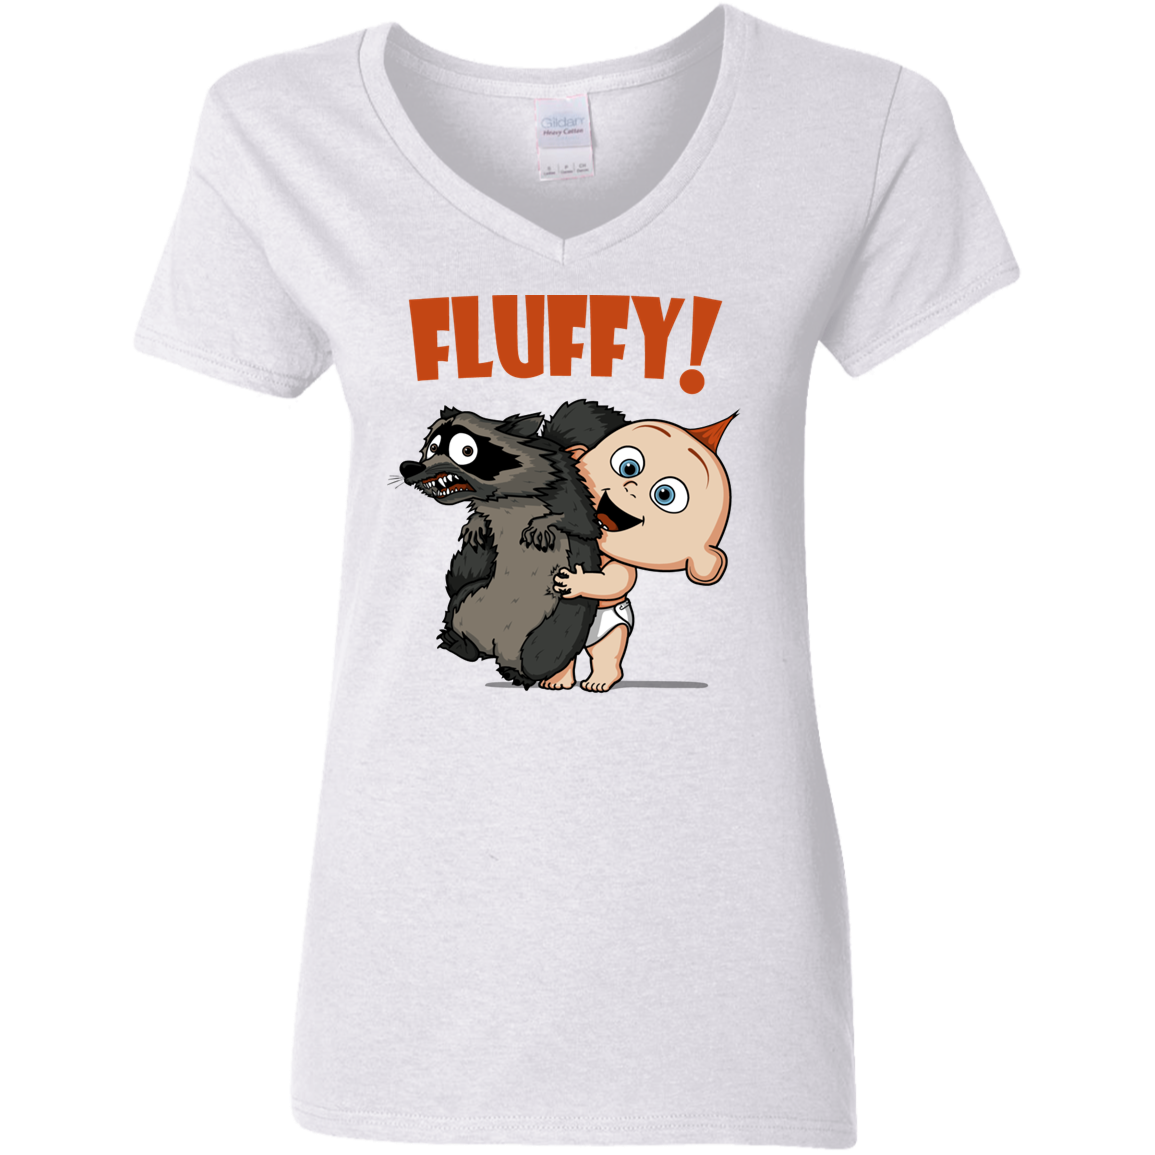 Fluffy Raccoon Women's V-Neck T-Shirt